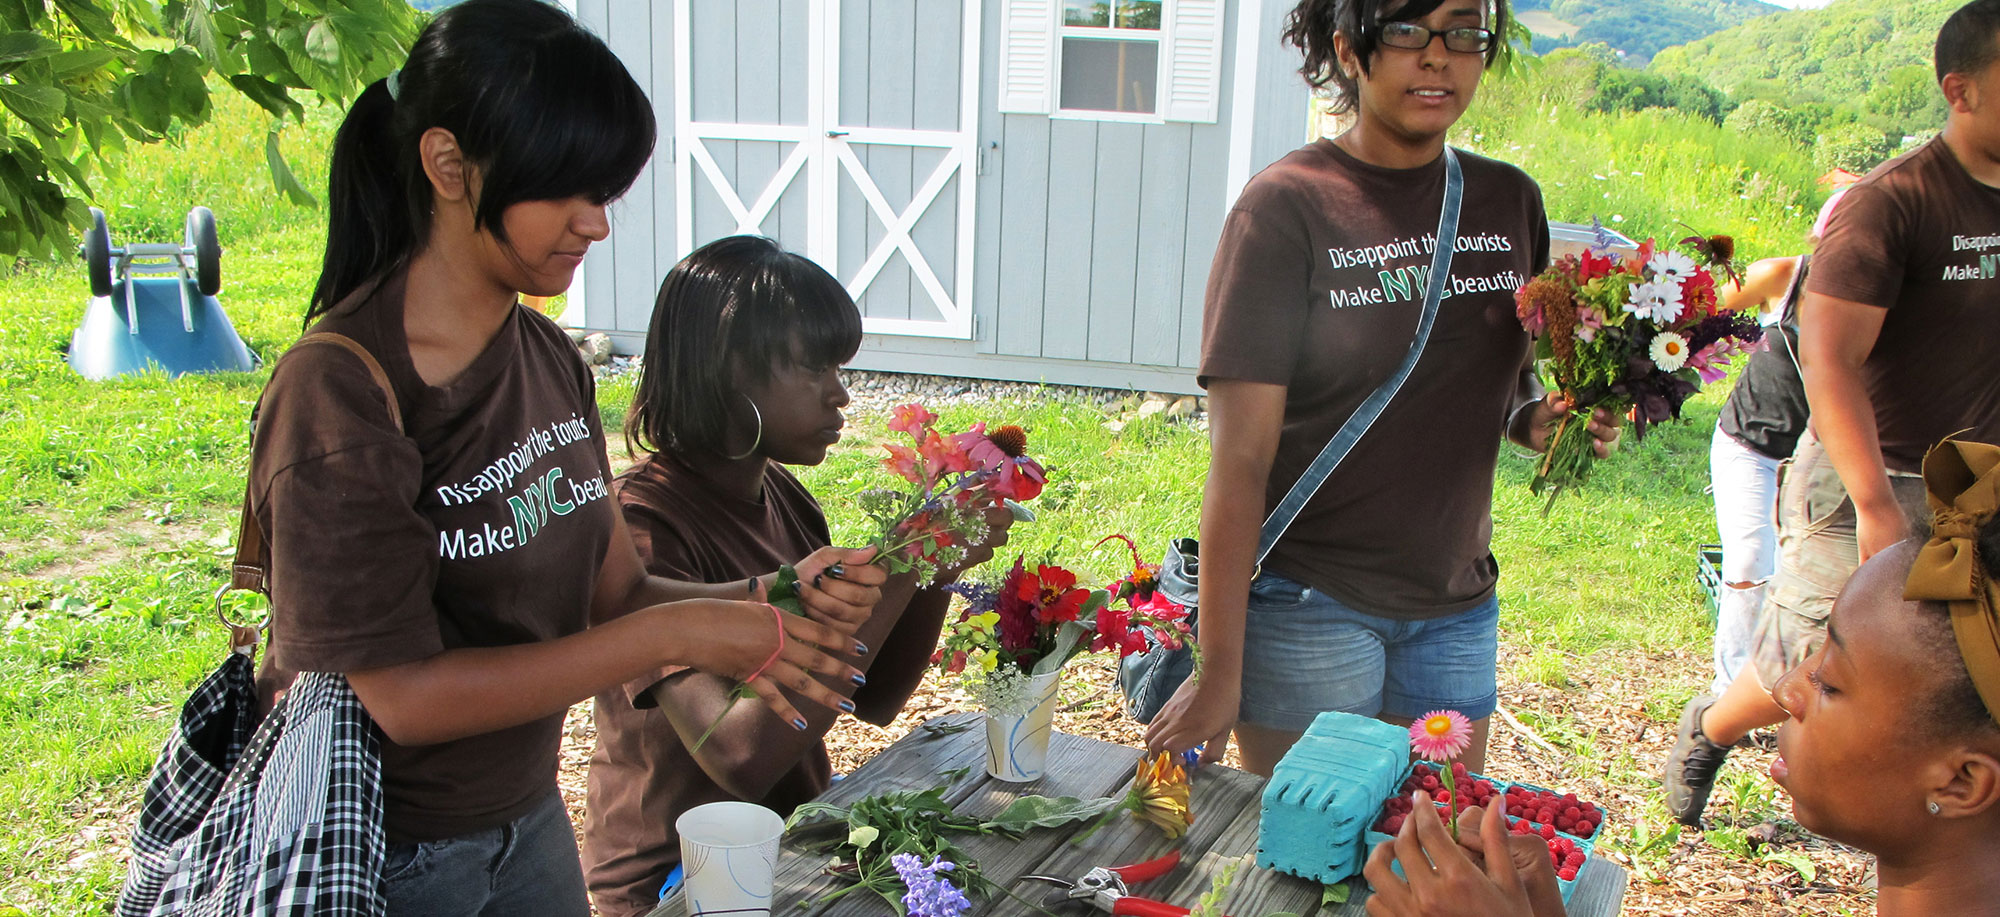 Visitors Make Their Own Bouquets